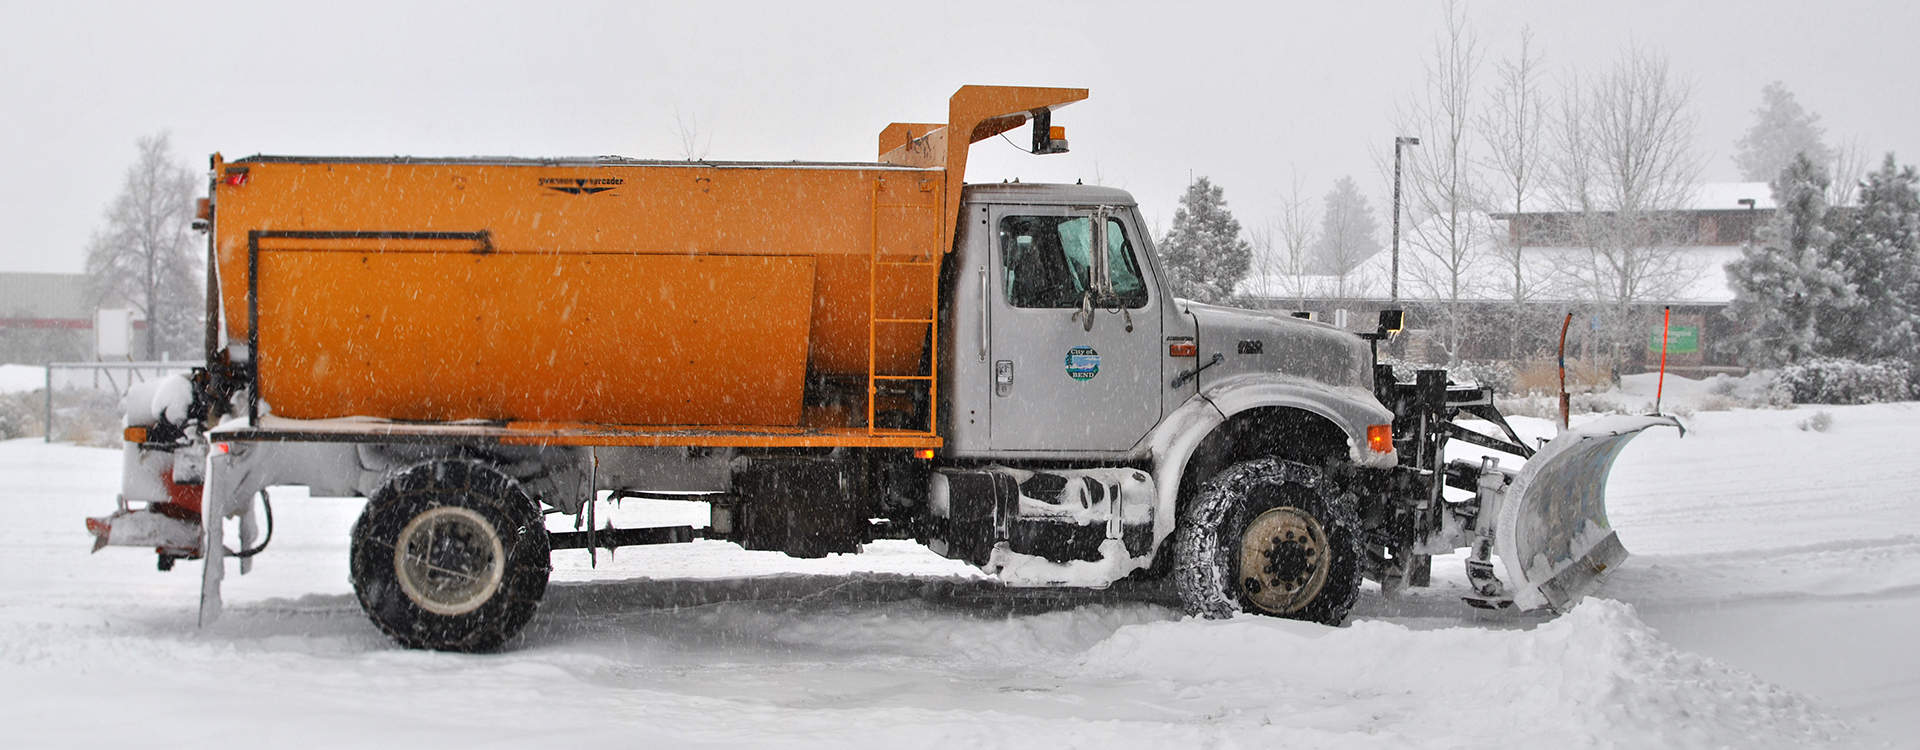 City of Bend snowplow parked as it snows all around.